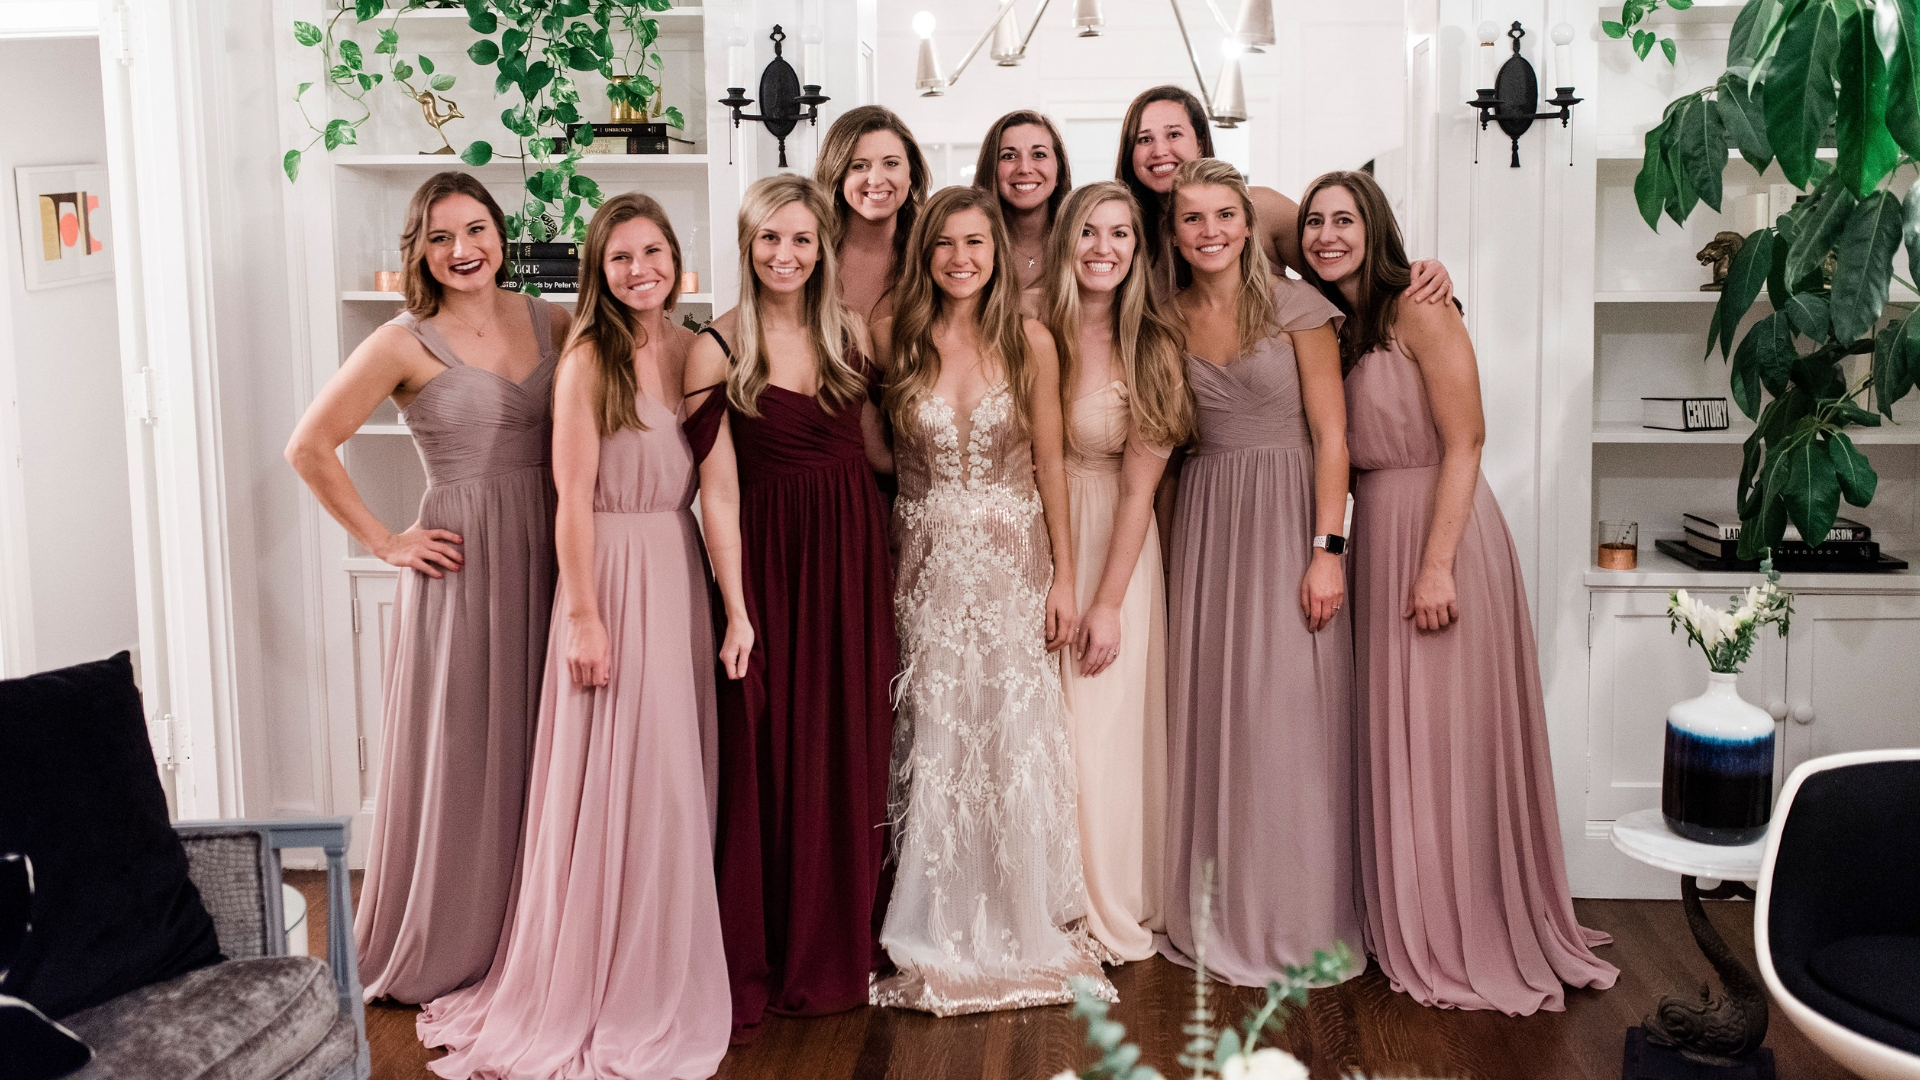 This Wedding Dress Tryon Party Is Changing How Both Brides And Bridesmaids Say I Do Revelry: S Burgundy Wedding Dresses At Websimilar.org